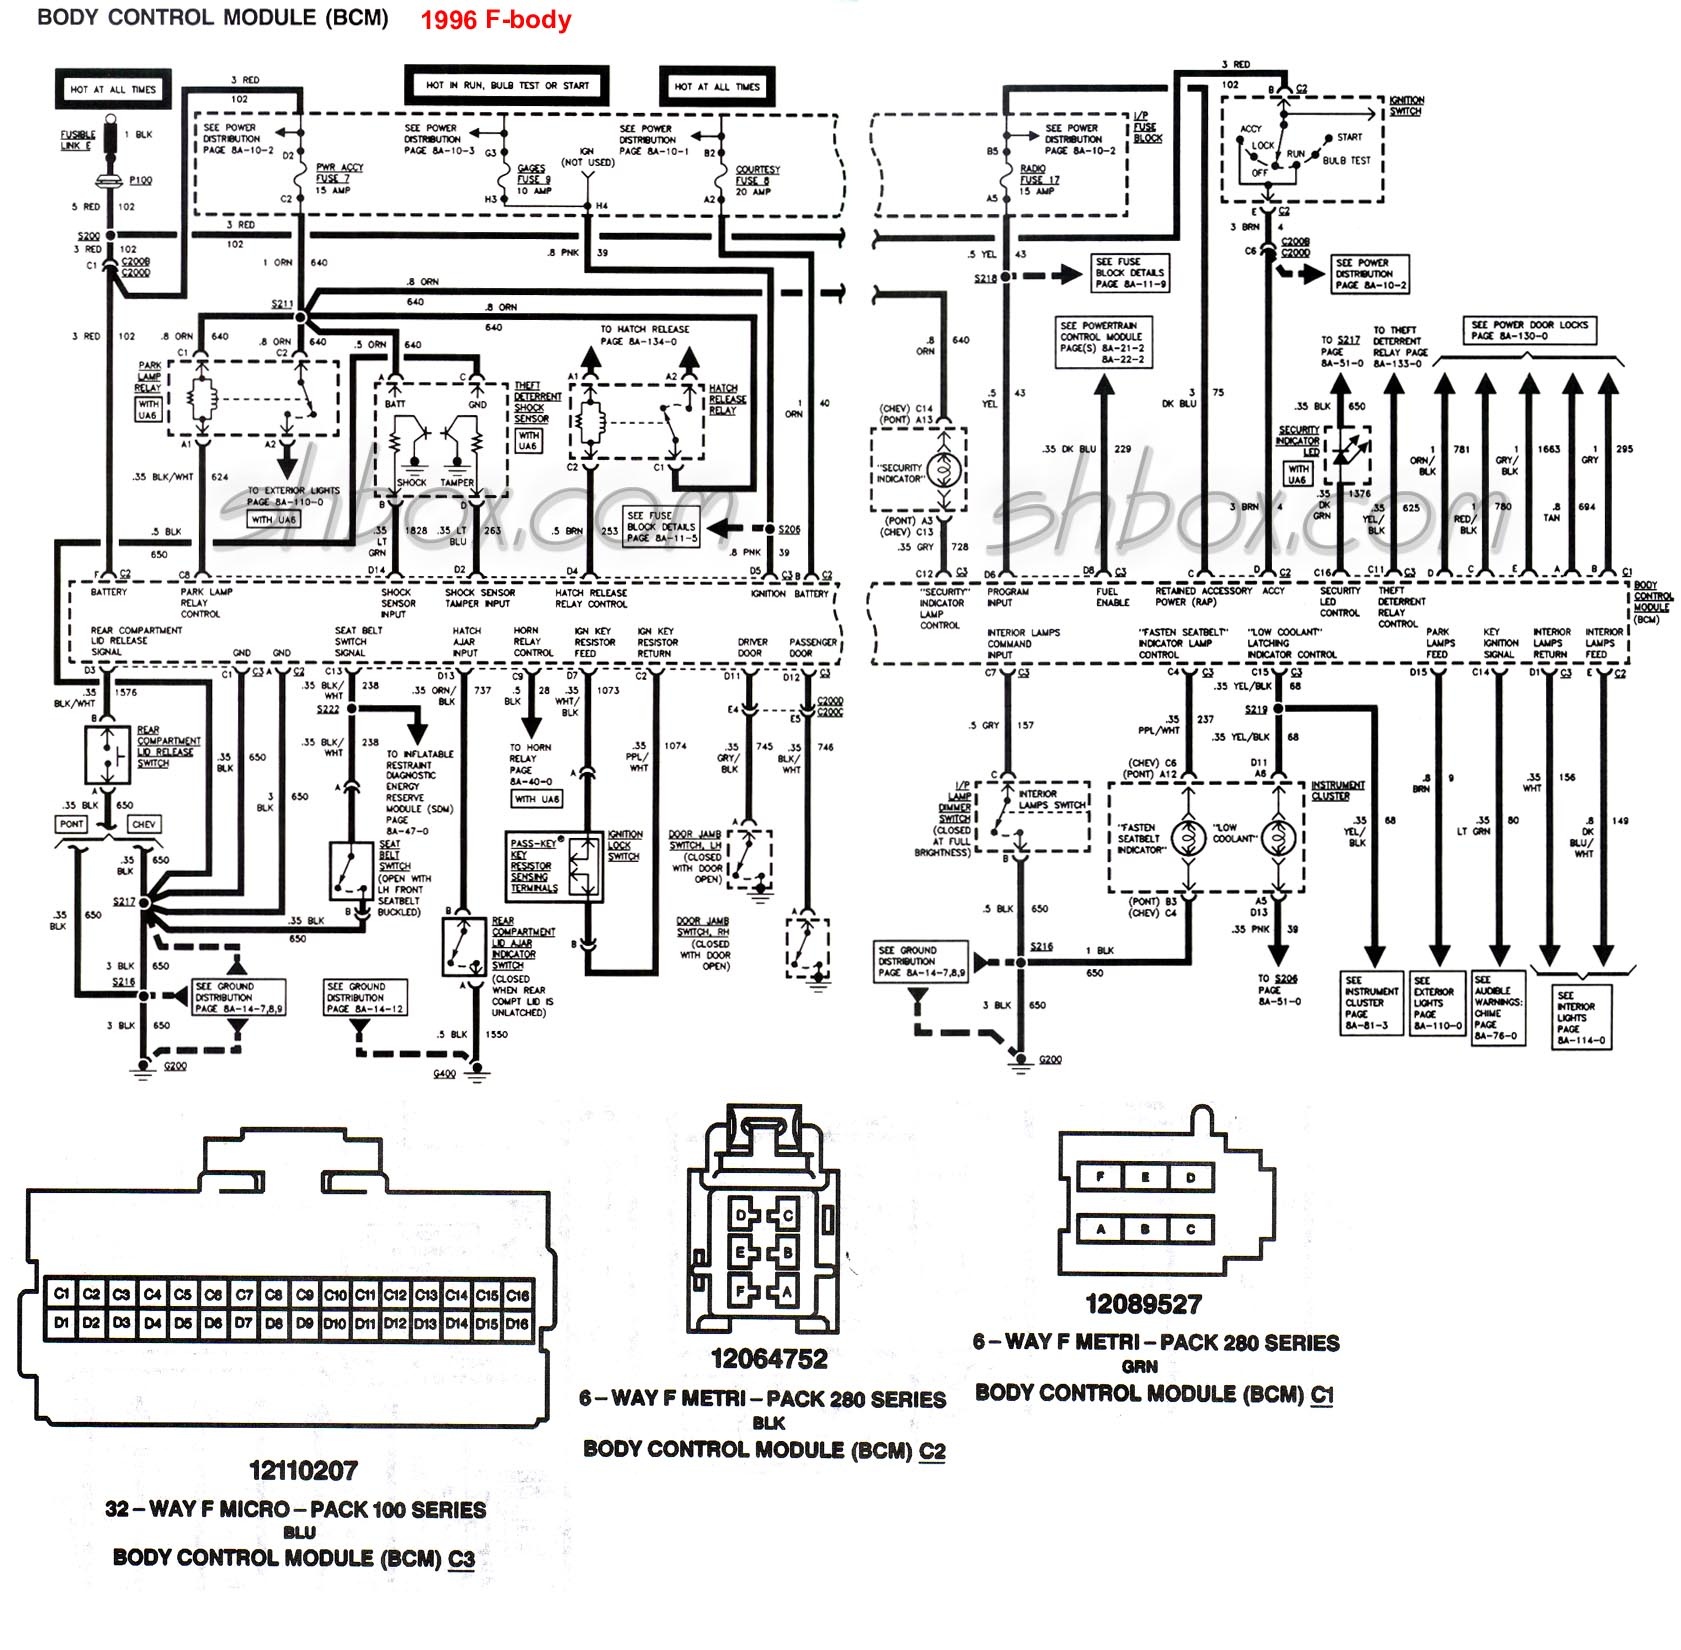 hight resolution of 2003 impala window wiring diagram wiring diagram p window impala wiring diagrams